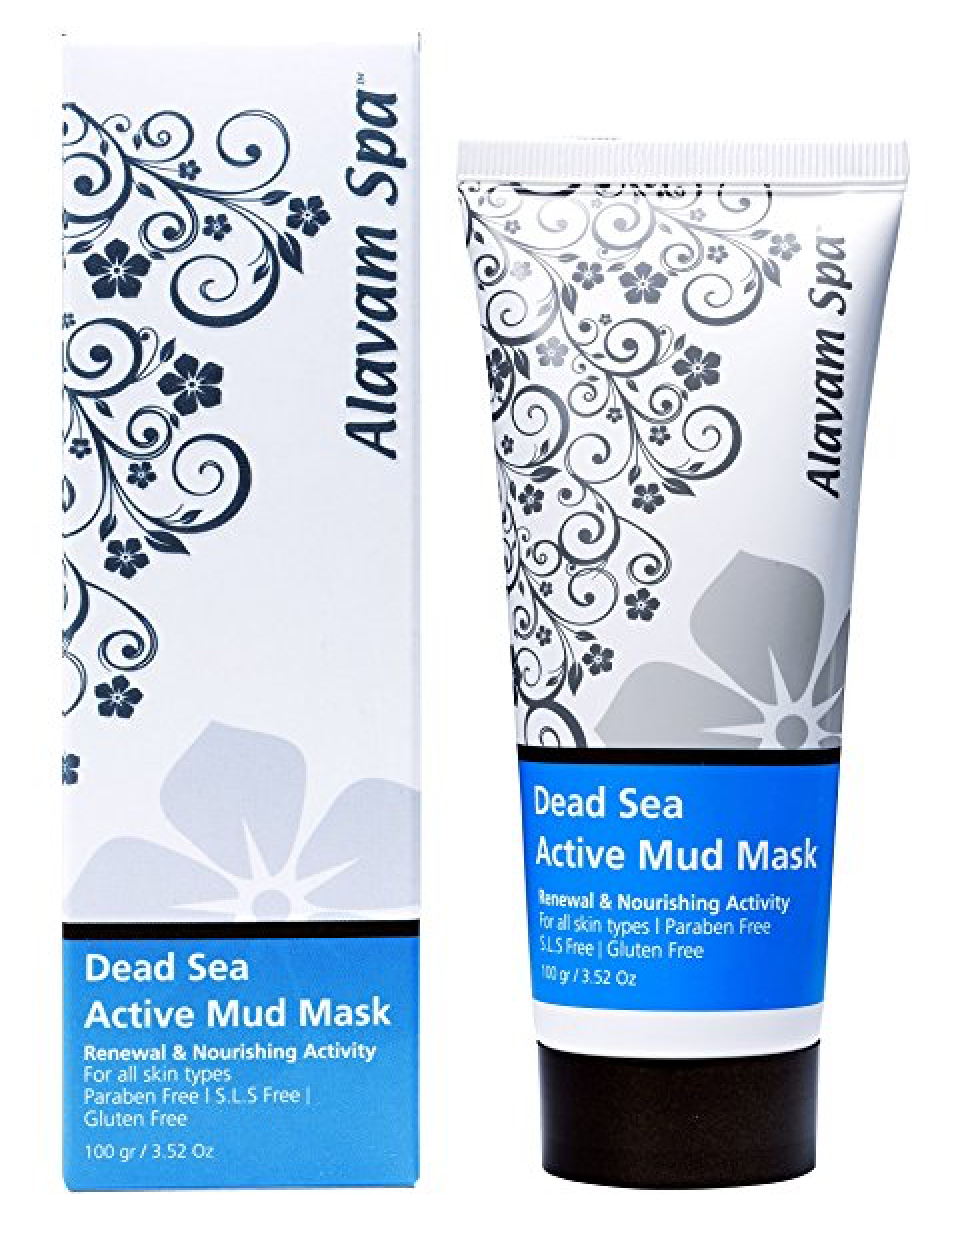 Alavam Dead Sea Active Mud Mask 3.52oz